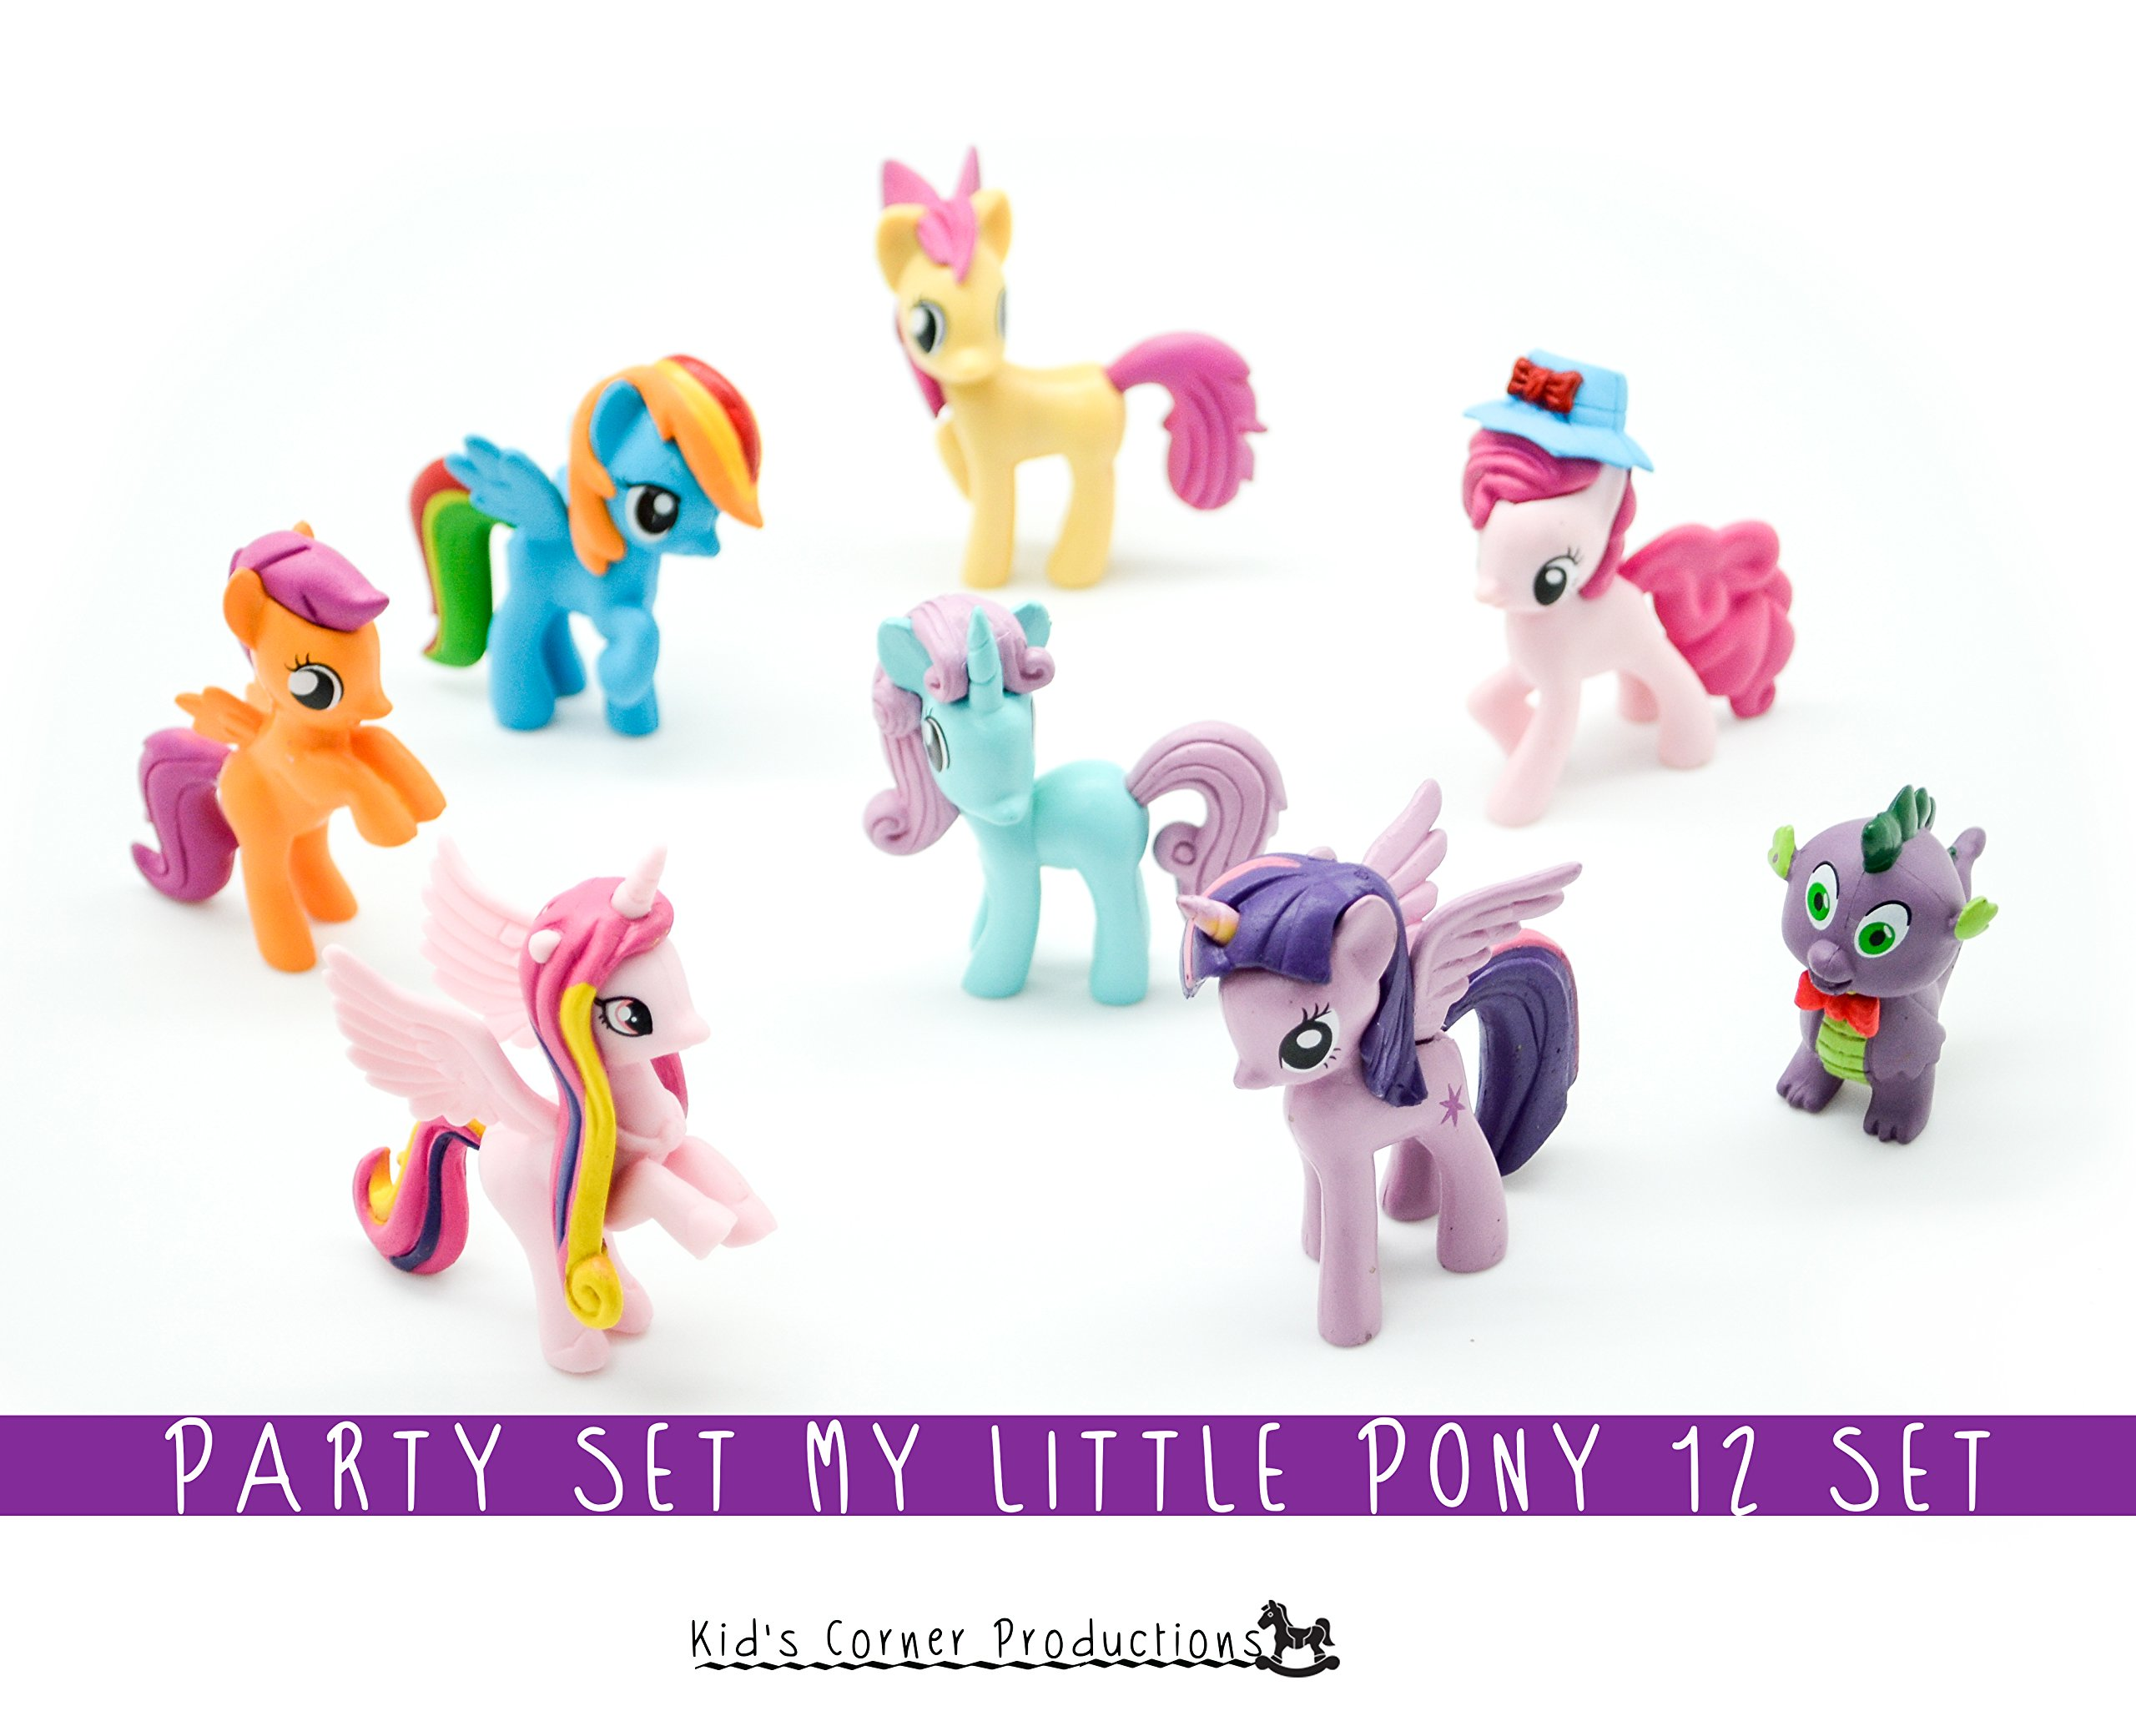 Kids Corner Productions - My Little Pony Party Bag Set of 12 Mini Figures, Cute Figures of Pinky Pie, Rainbow Dash, Rarity with Spike and many more Magic Figures